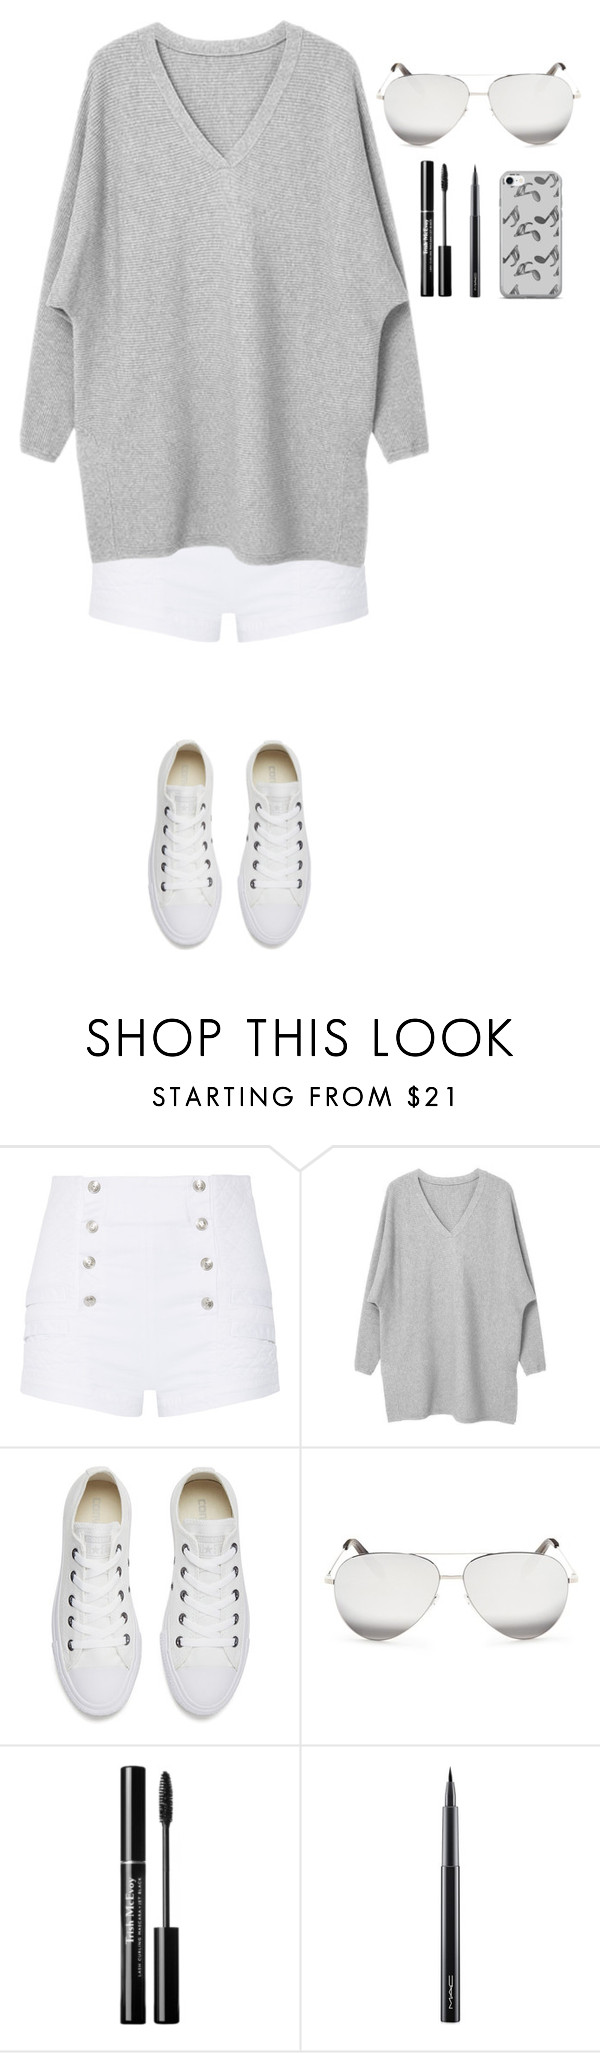 """""""Untitled #348"""" by dutchfashionlover ❤ liked on Polyvore featuring Pierre Balmain, Converse, Victoria Beckham, MAC Cosmetics, Music Notes and grey"""